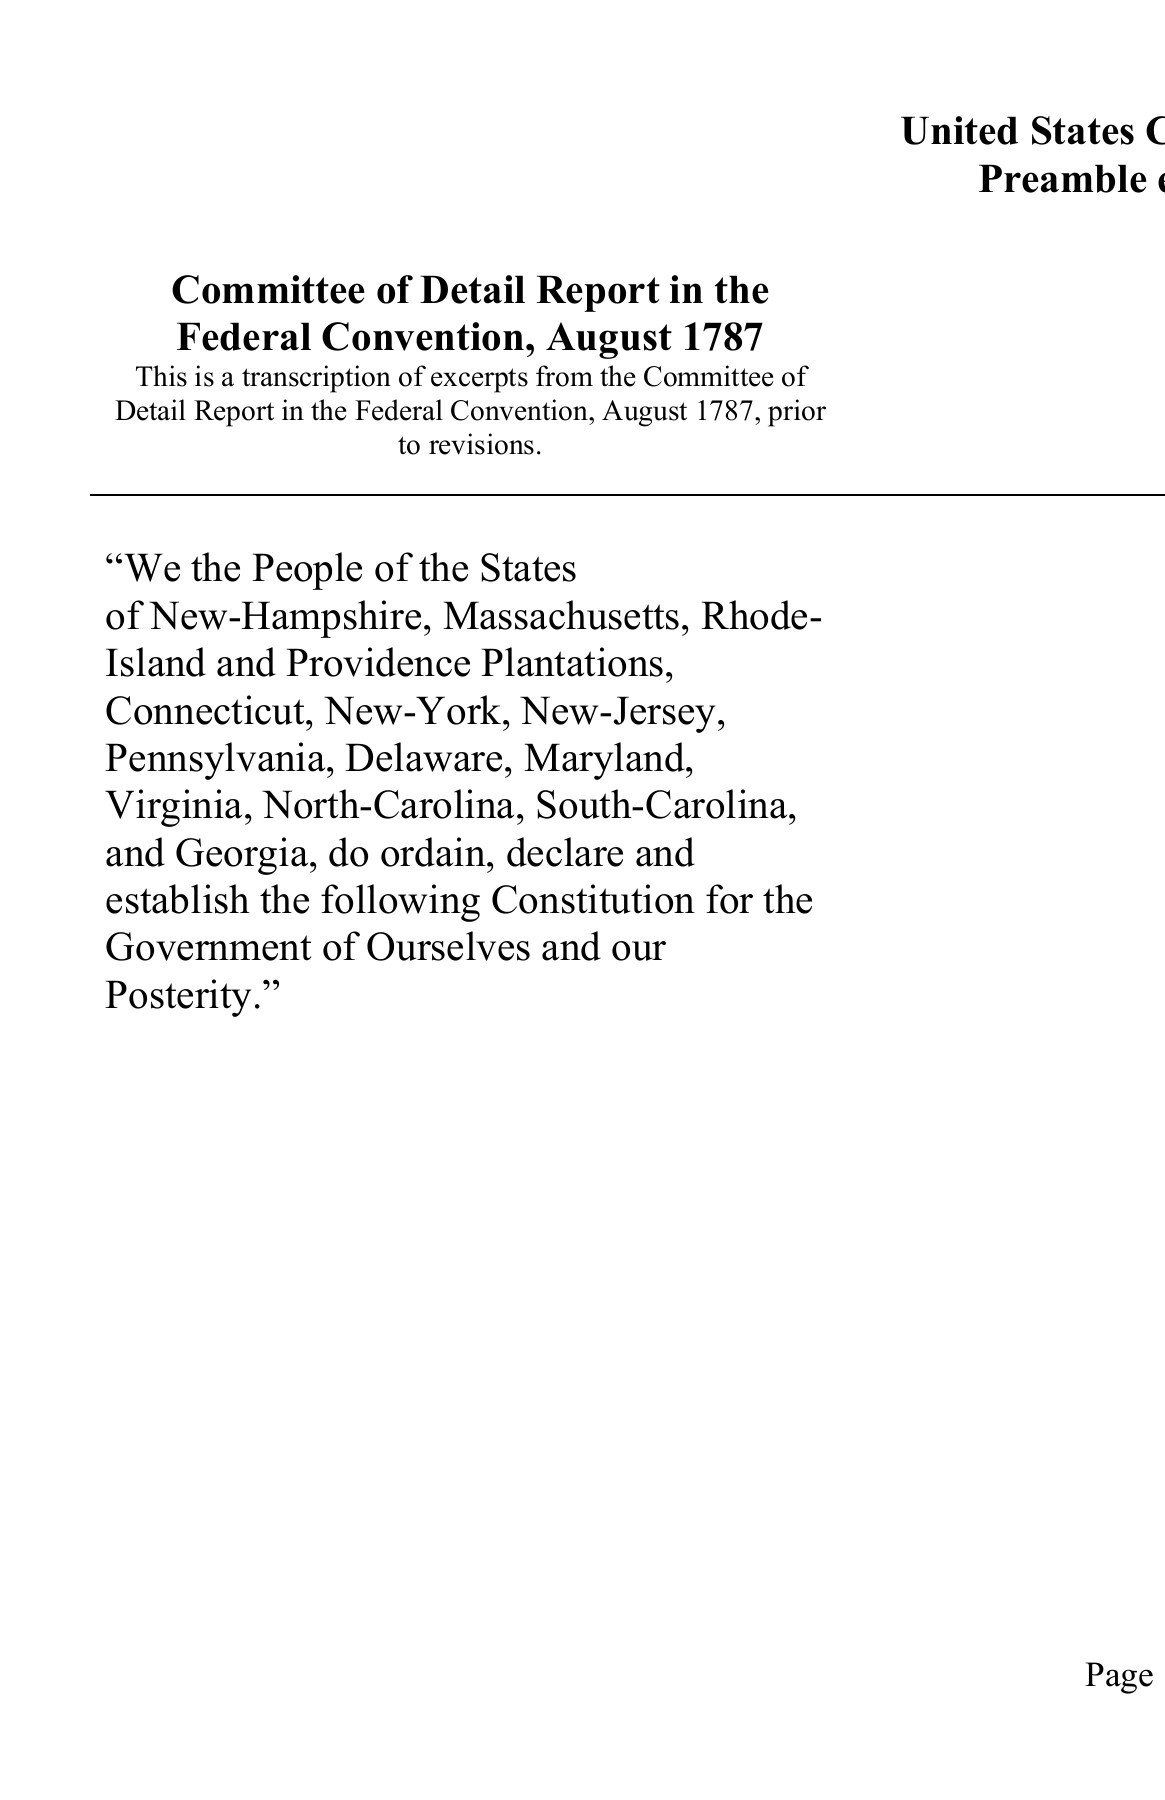 United States Constitution Worksheet United States